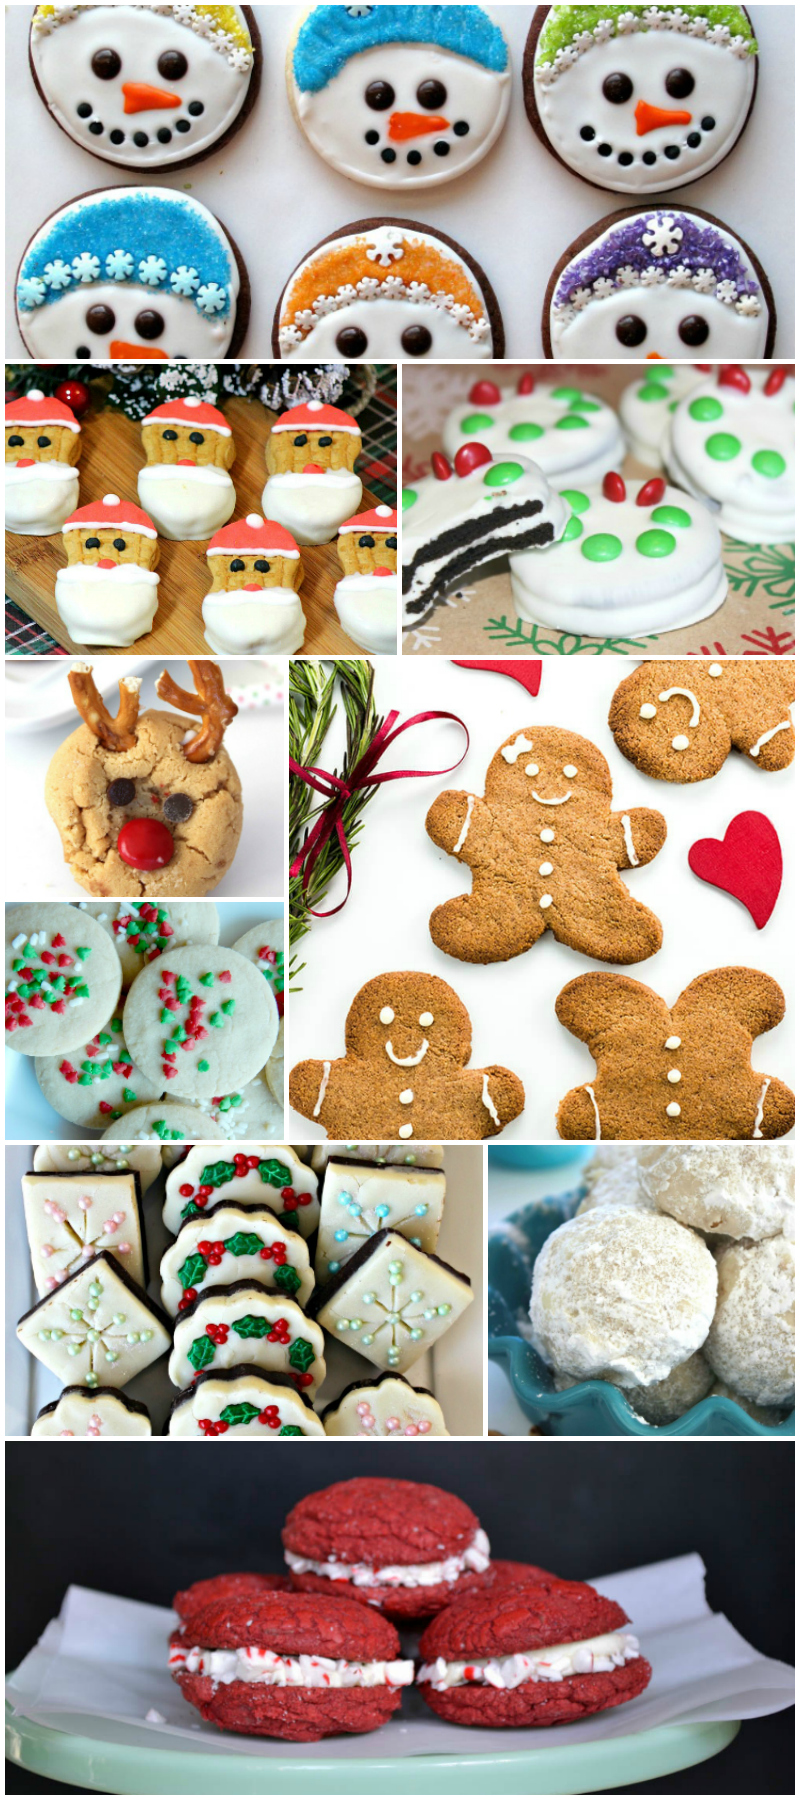 30 Festive Christmas Cookies Recipes - Food Blogger Recipe Round Up